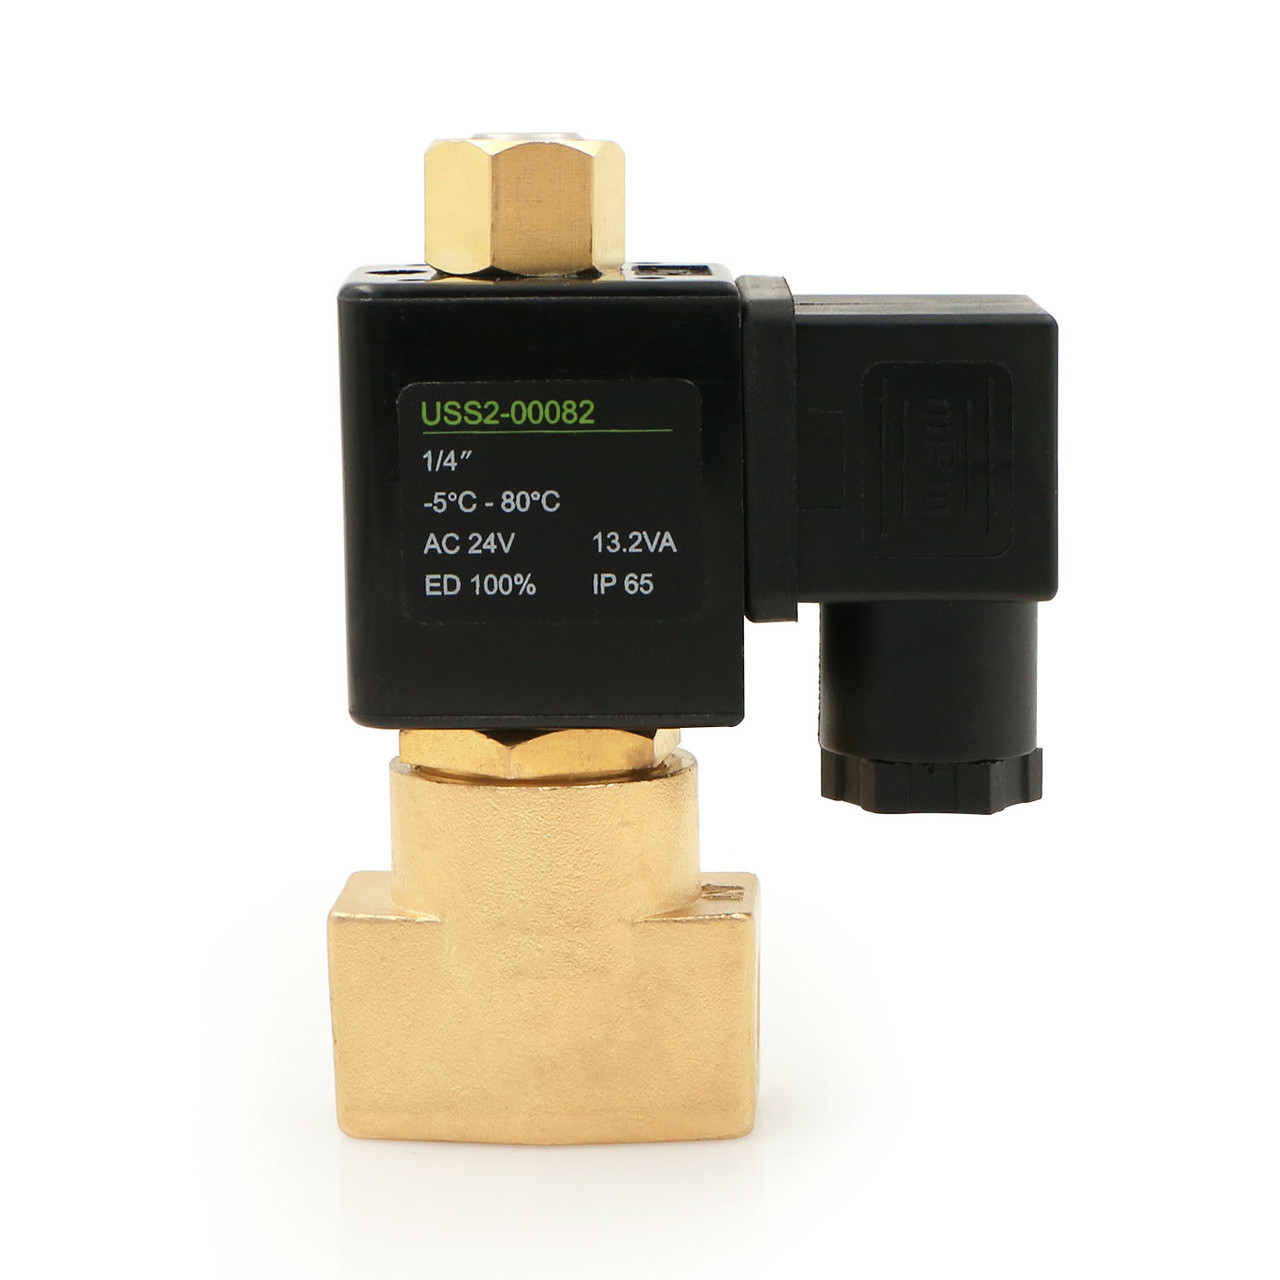 """USSOLID Electric Solenoid Valve- 1/4"""" 24V AC Solenoid Valve Brass Body Normally Open, NBR SEAL"""